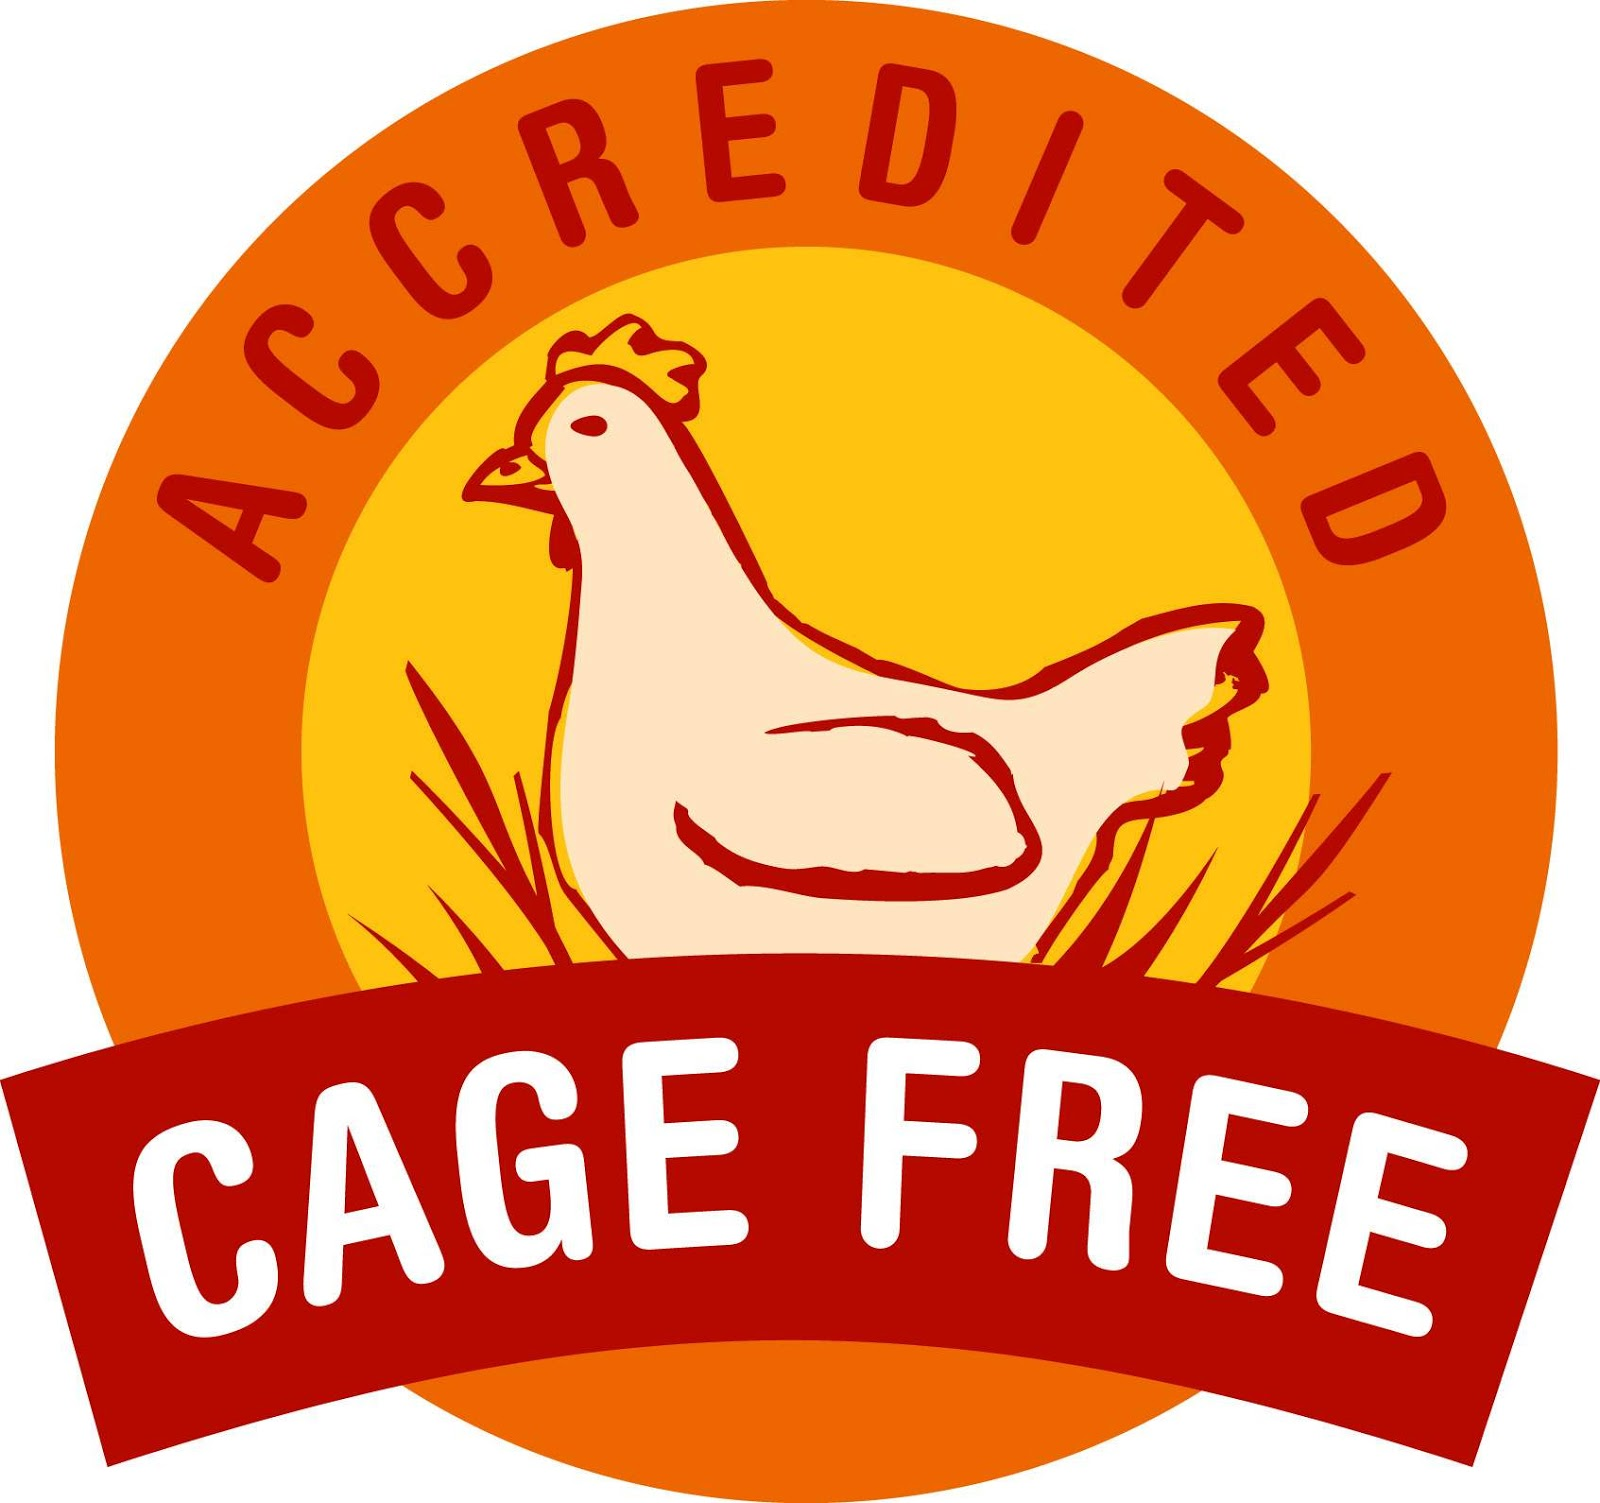 Cage-Free-sodexo